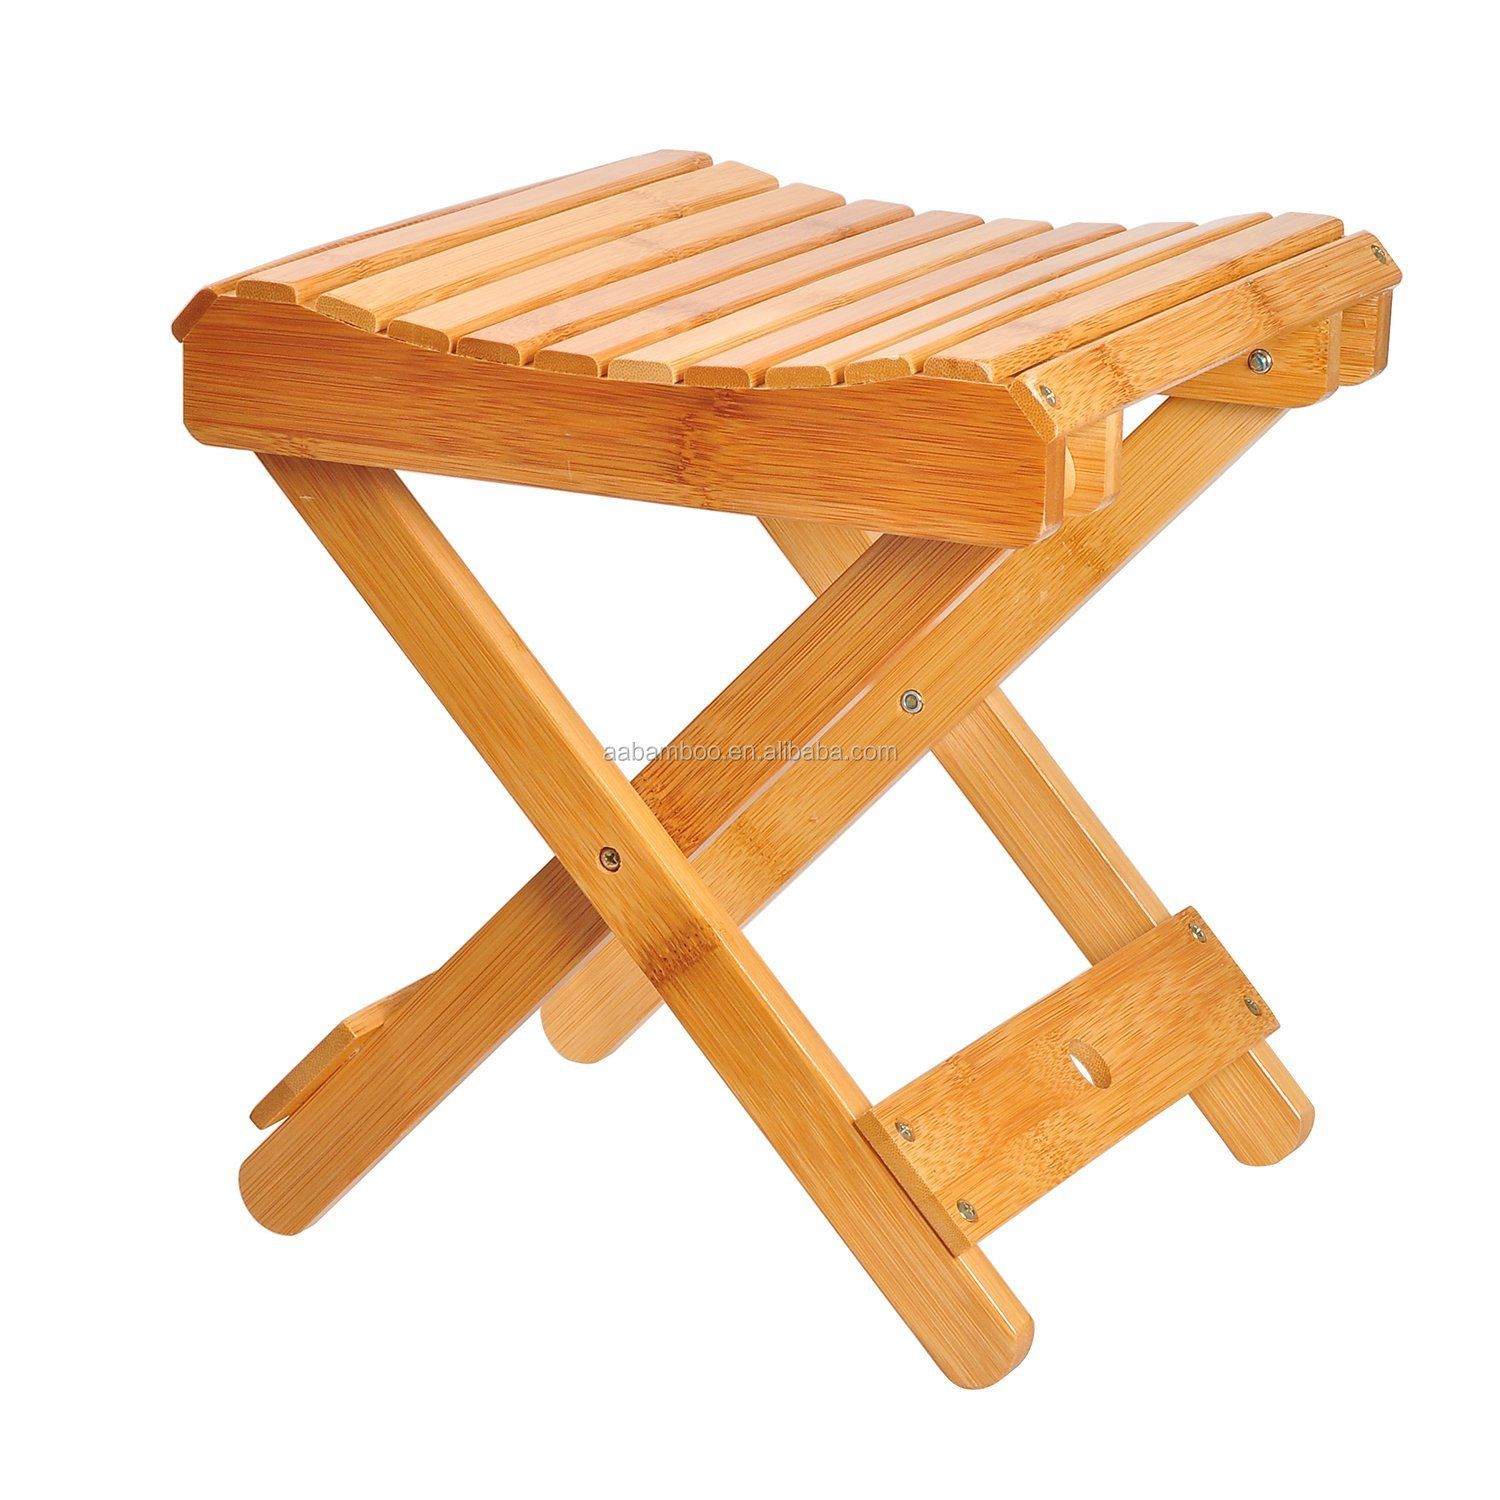 Wood Folding Stool, Wood Folding Stool Suppliers and Manufacturers ...